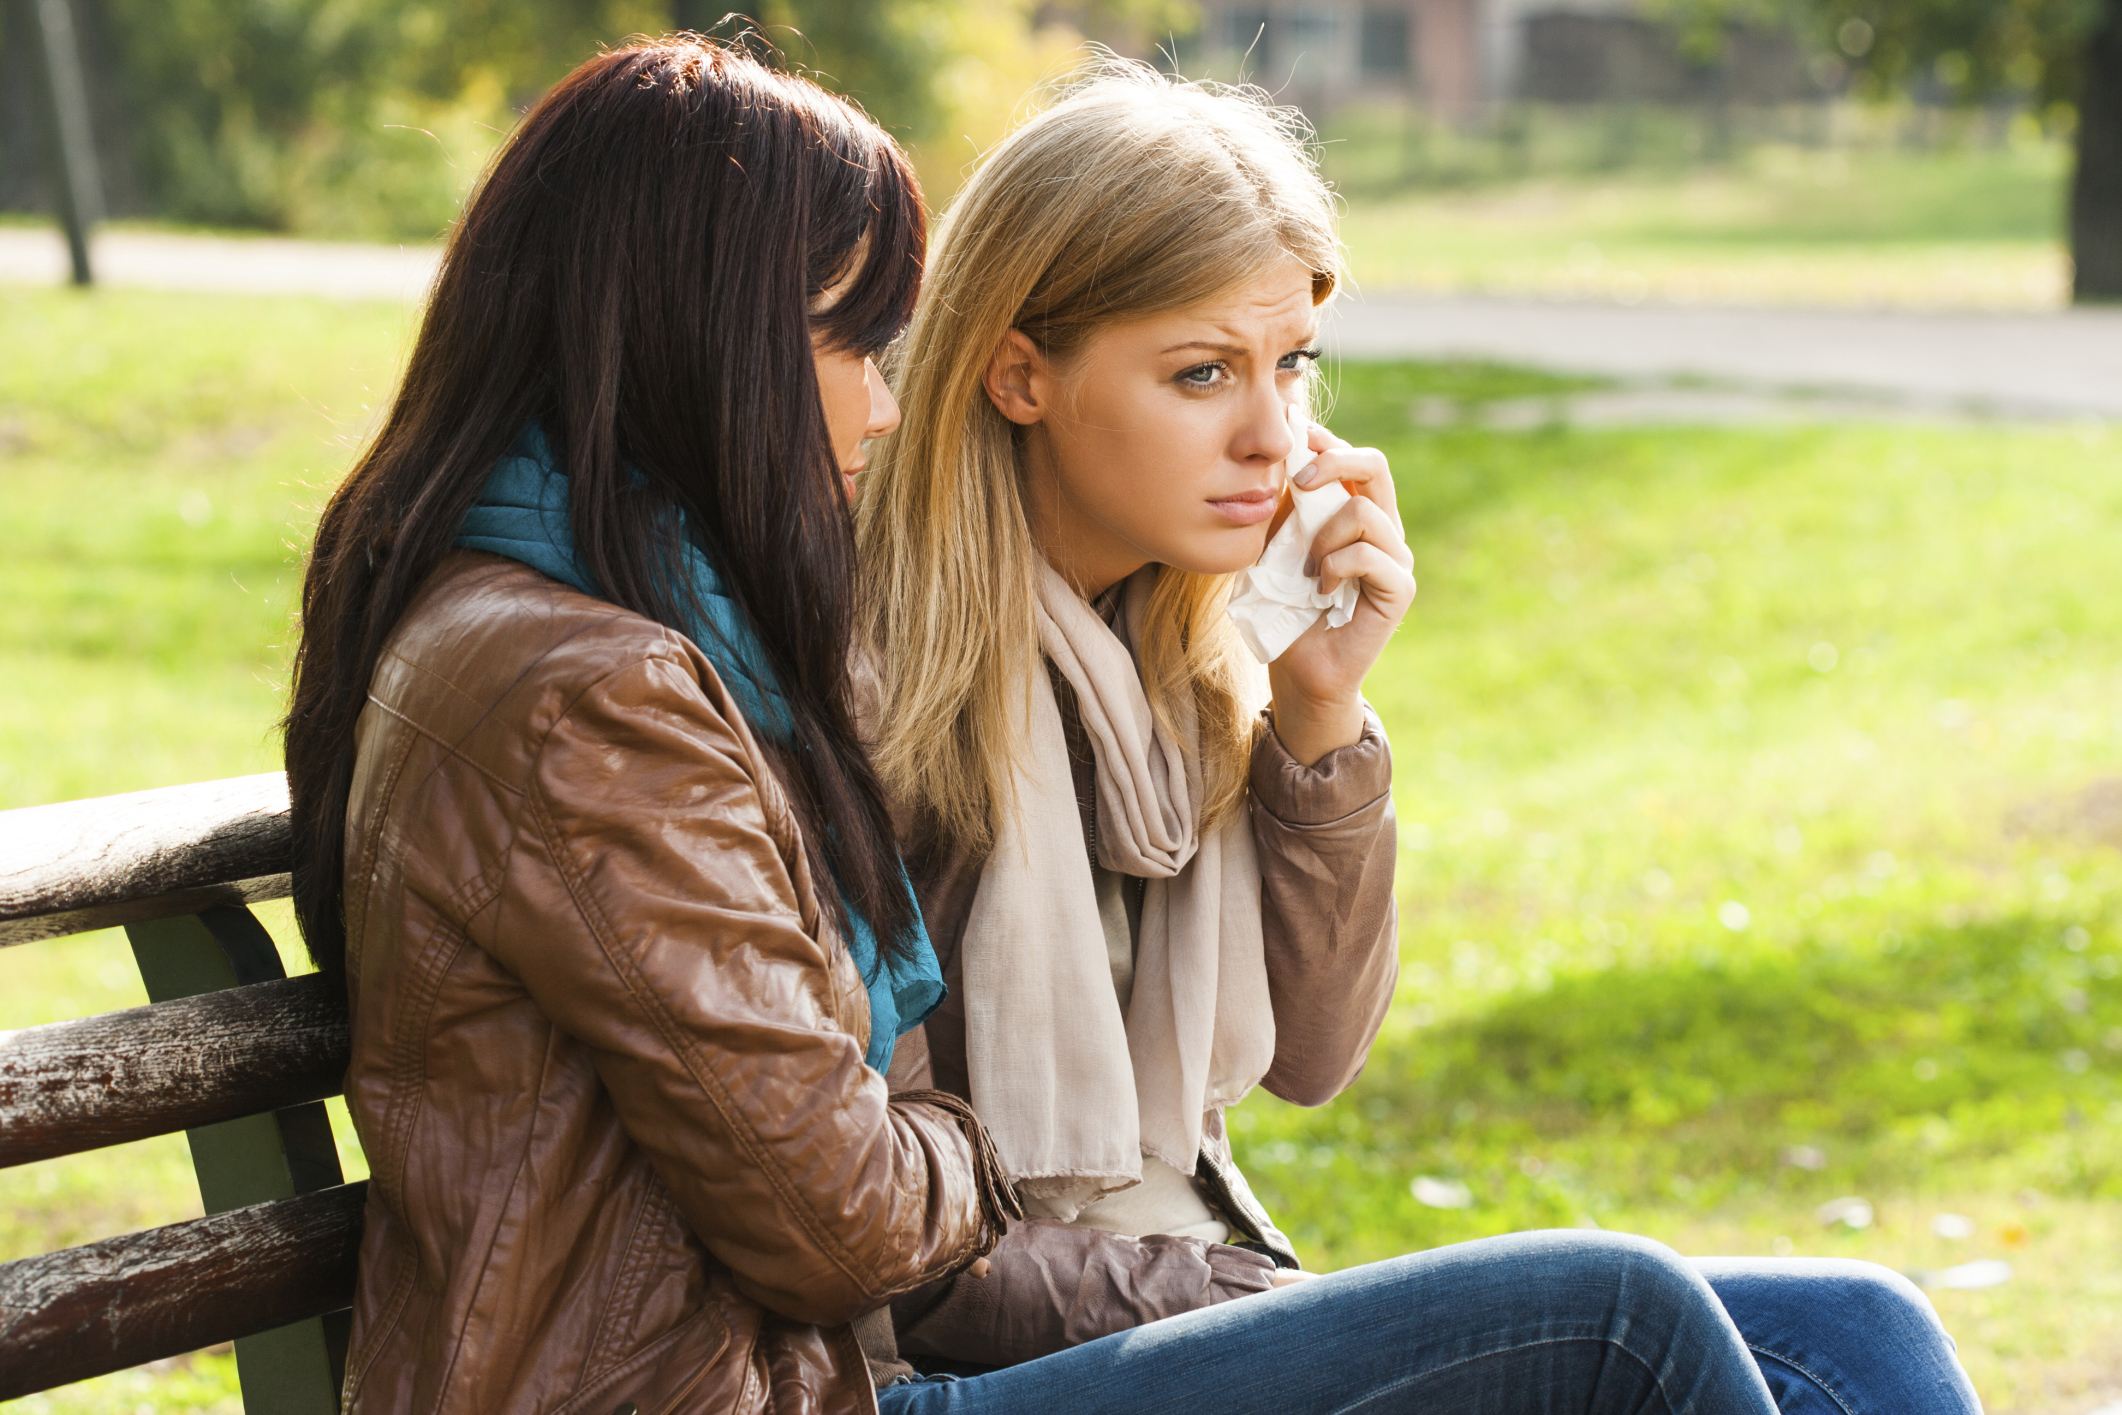 How to Listen When a Friend Is in Pain